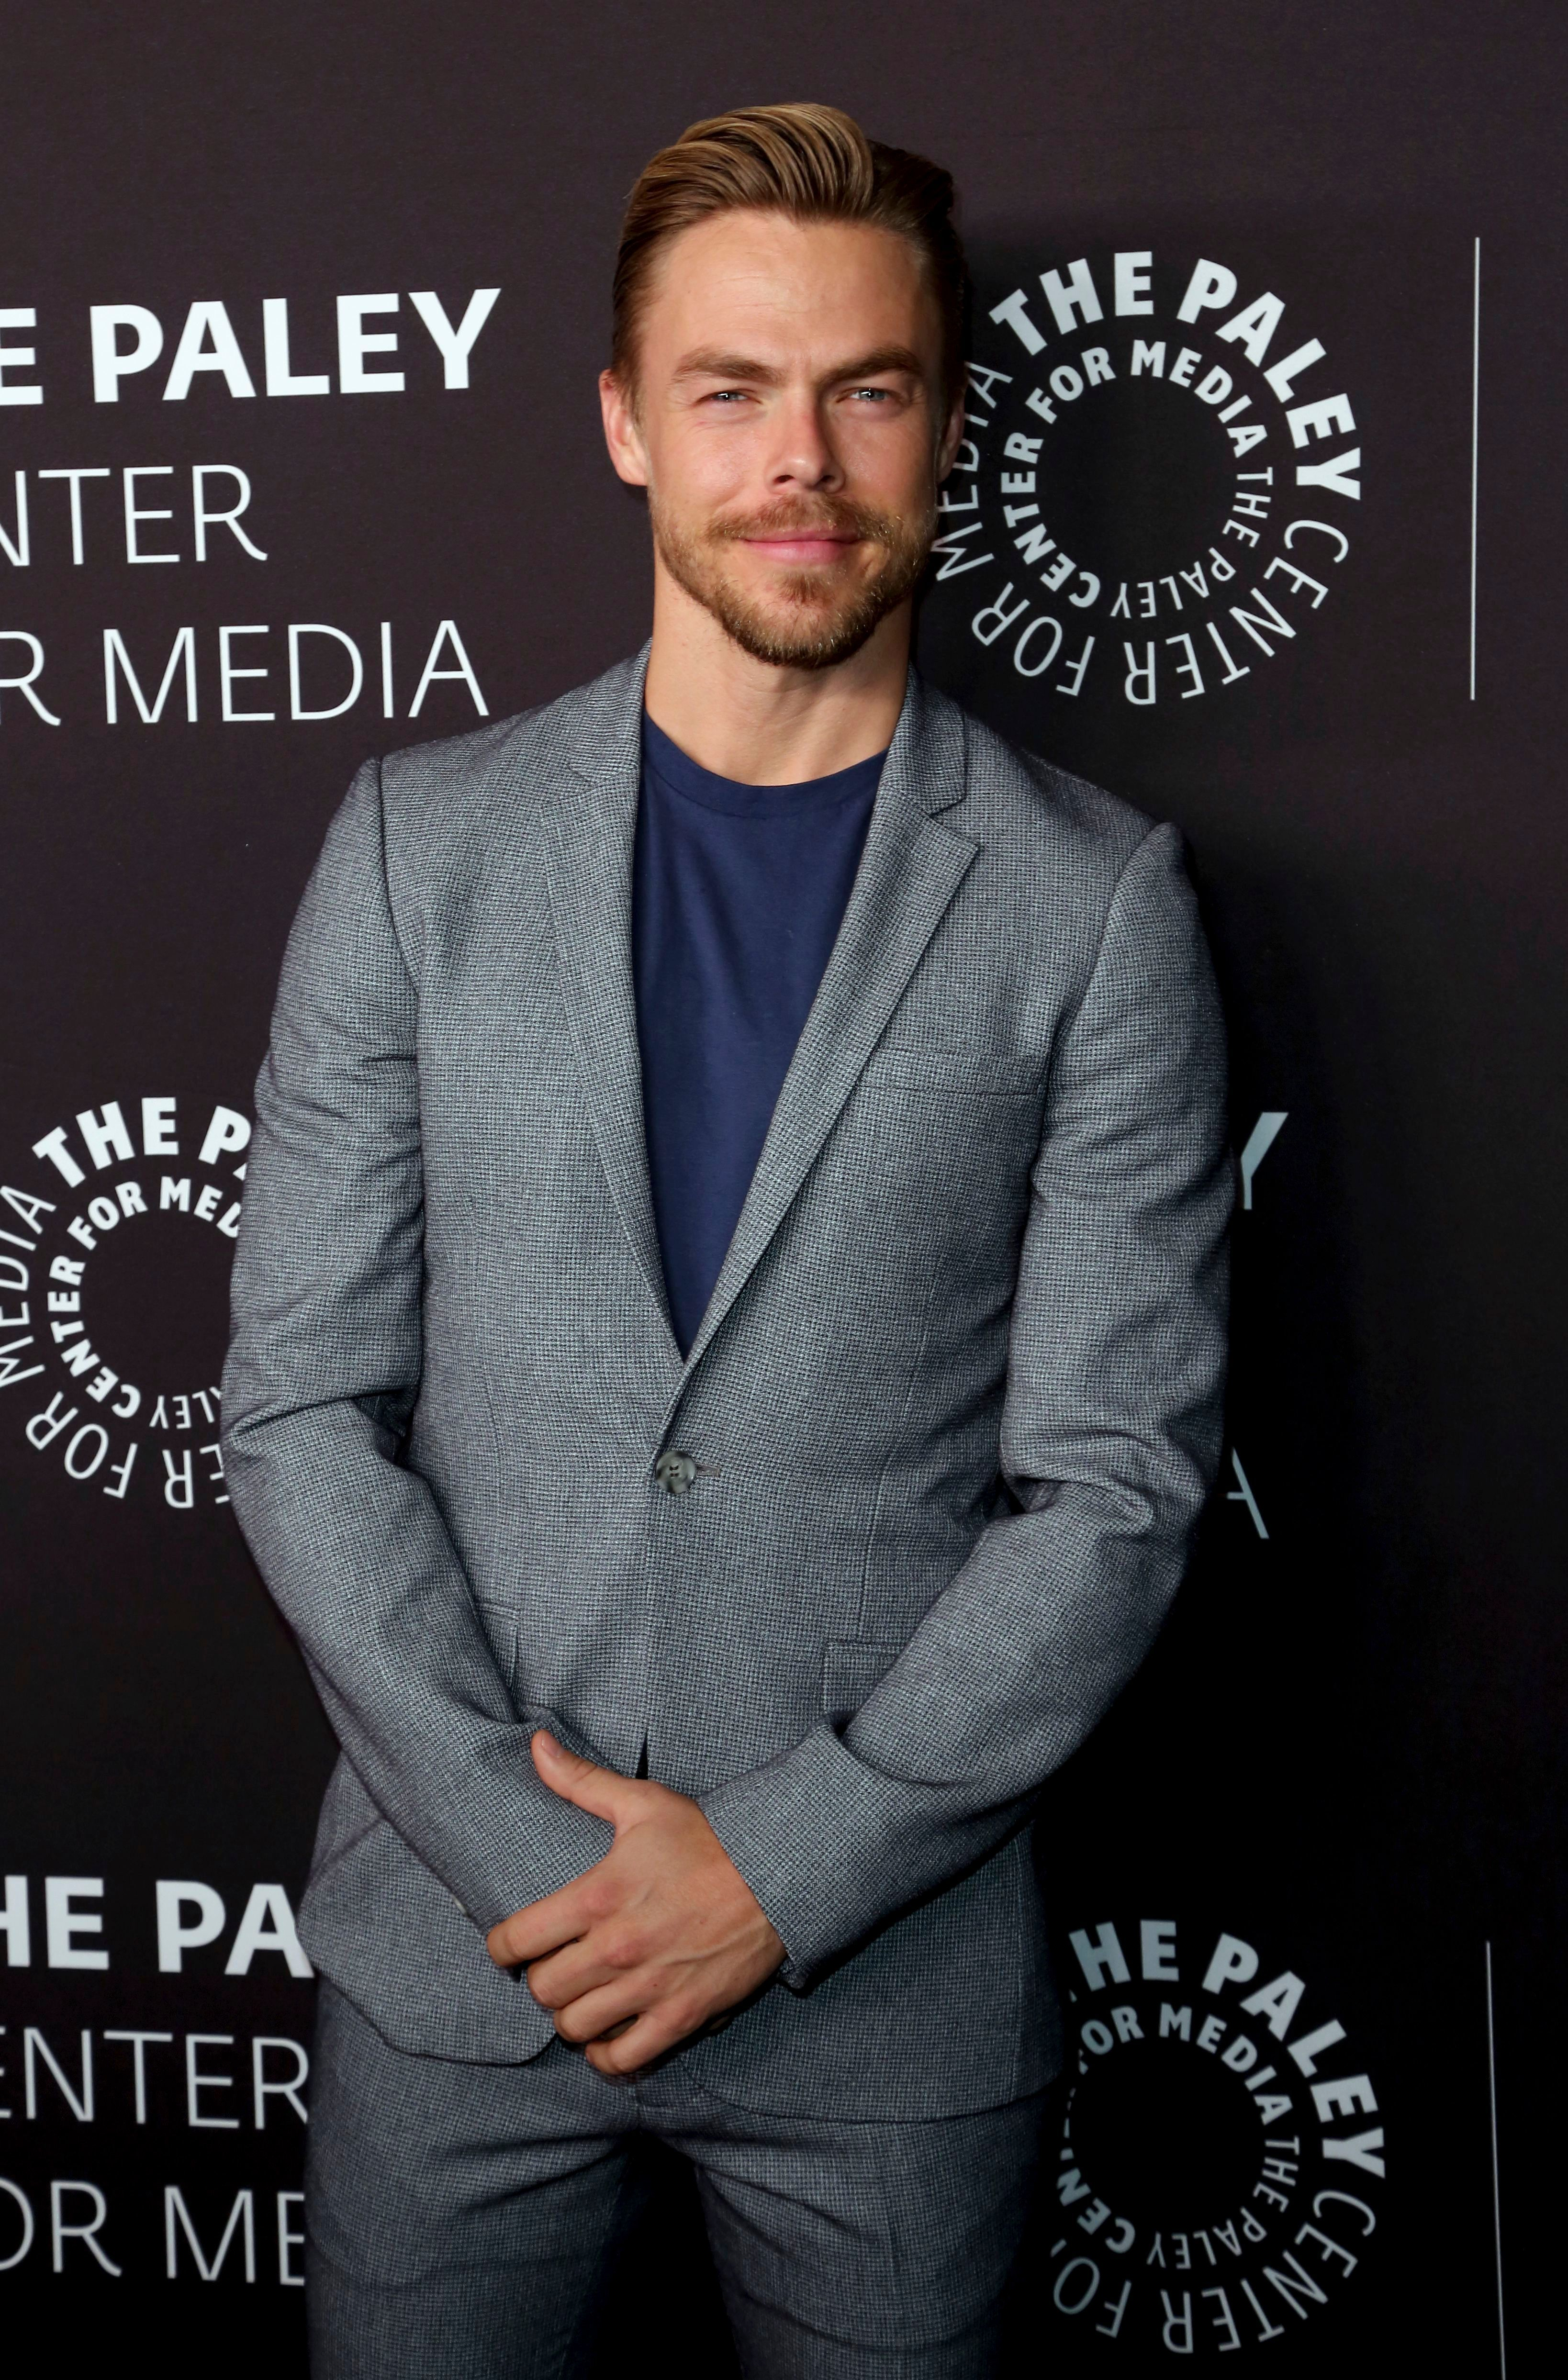 """Derek Hough arrives at the """"Paley Honors in Hollywood: A Gala Tribute to Music on Television"""" event at The Beverly Wilshire on Oct. 25, 2018."""